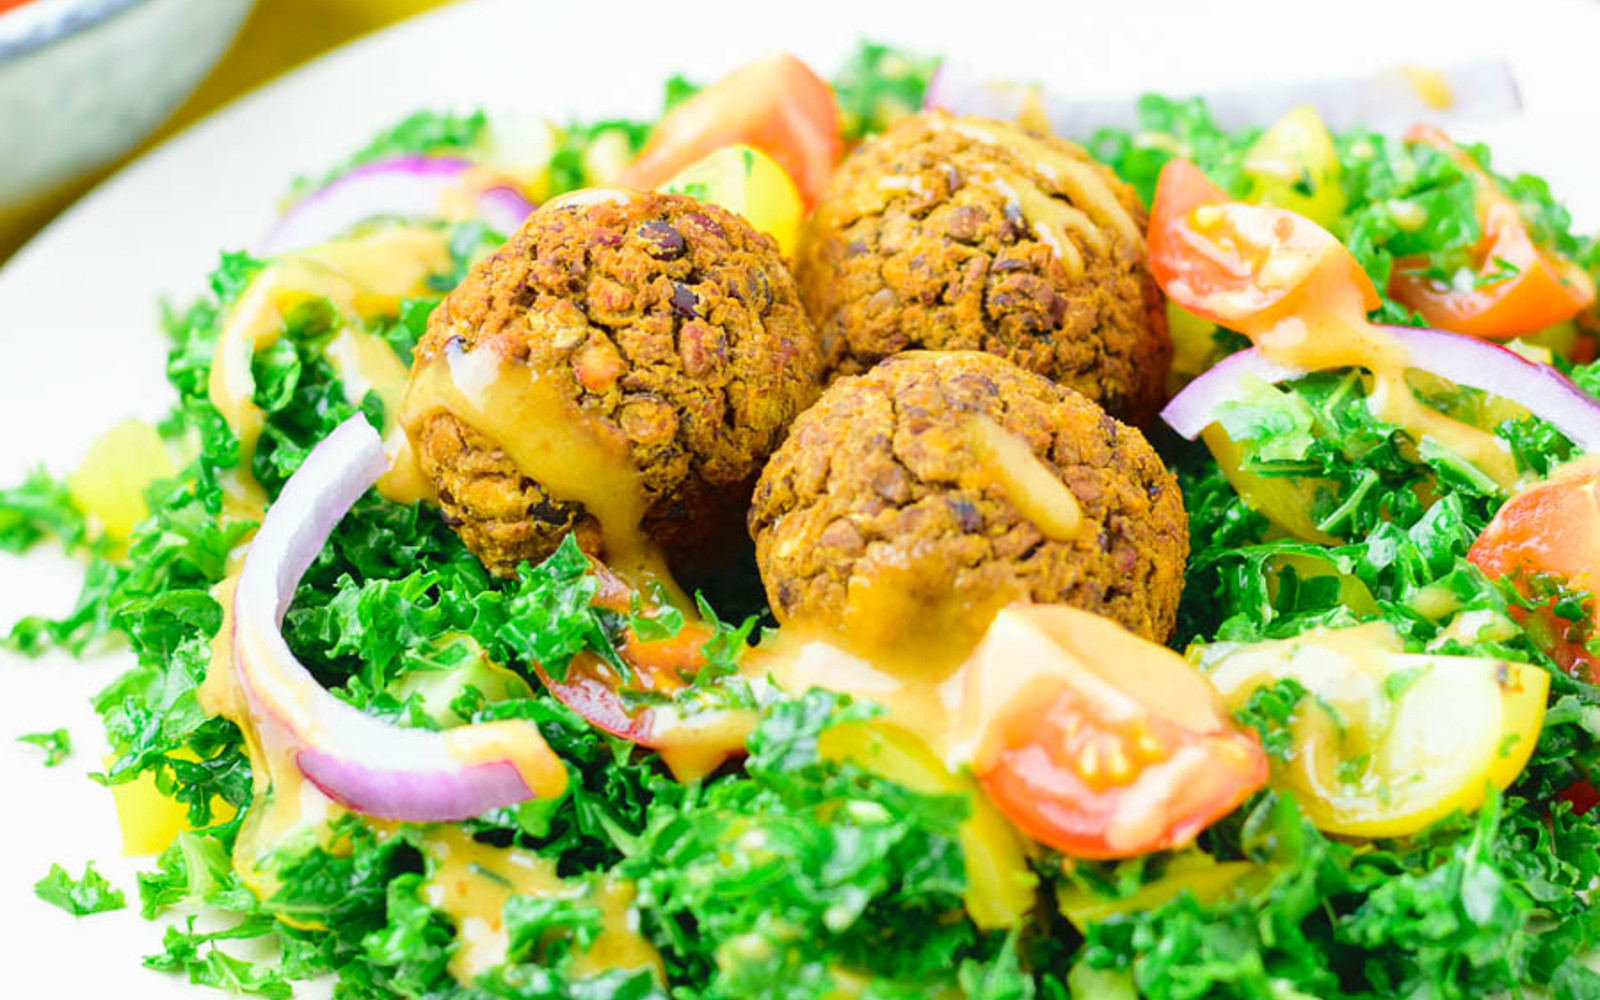 kale salad with lentil meatballs